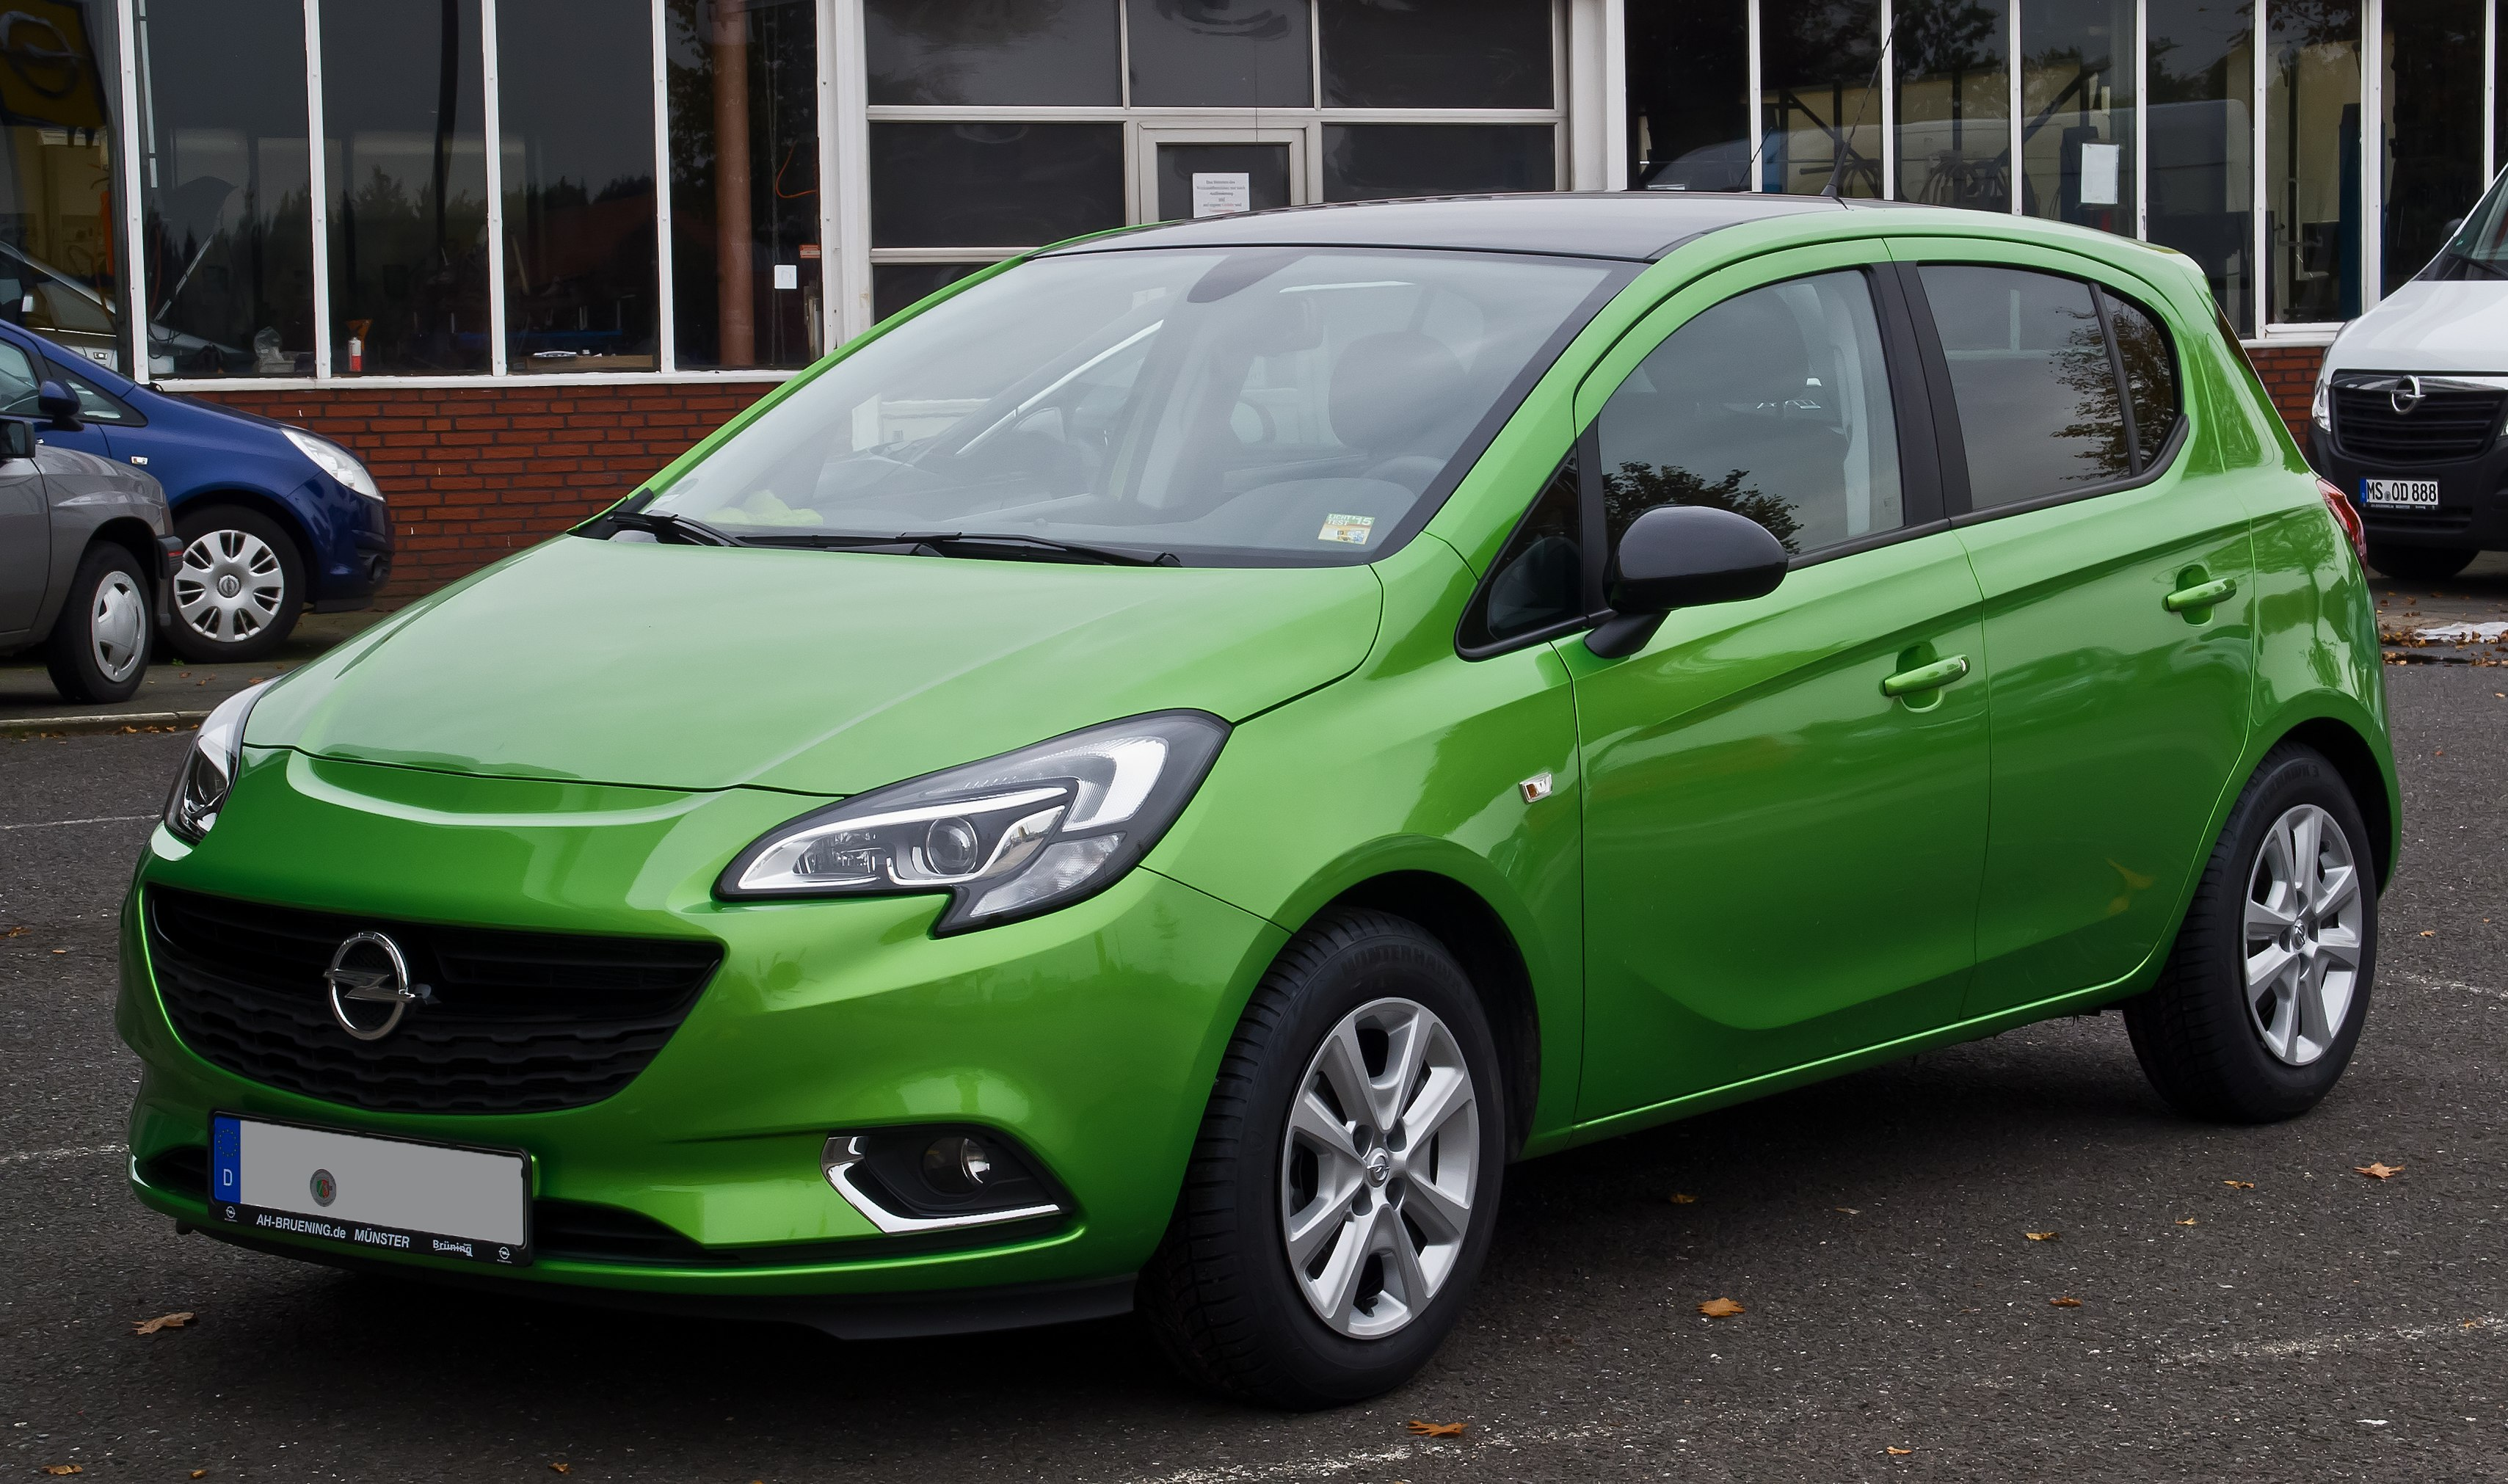 Opel Corsa The plete information and online sale with free